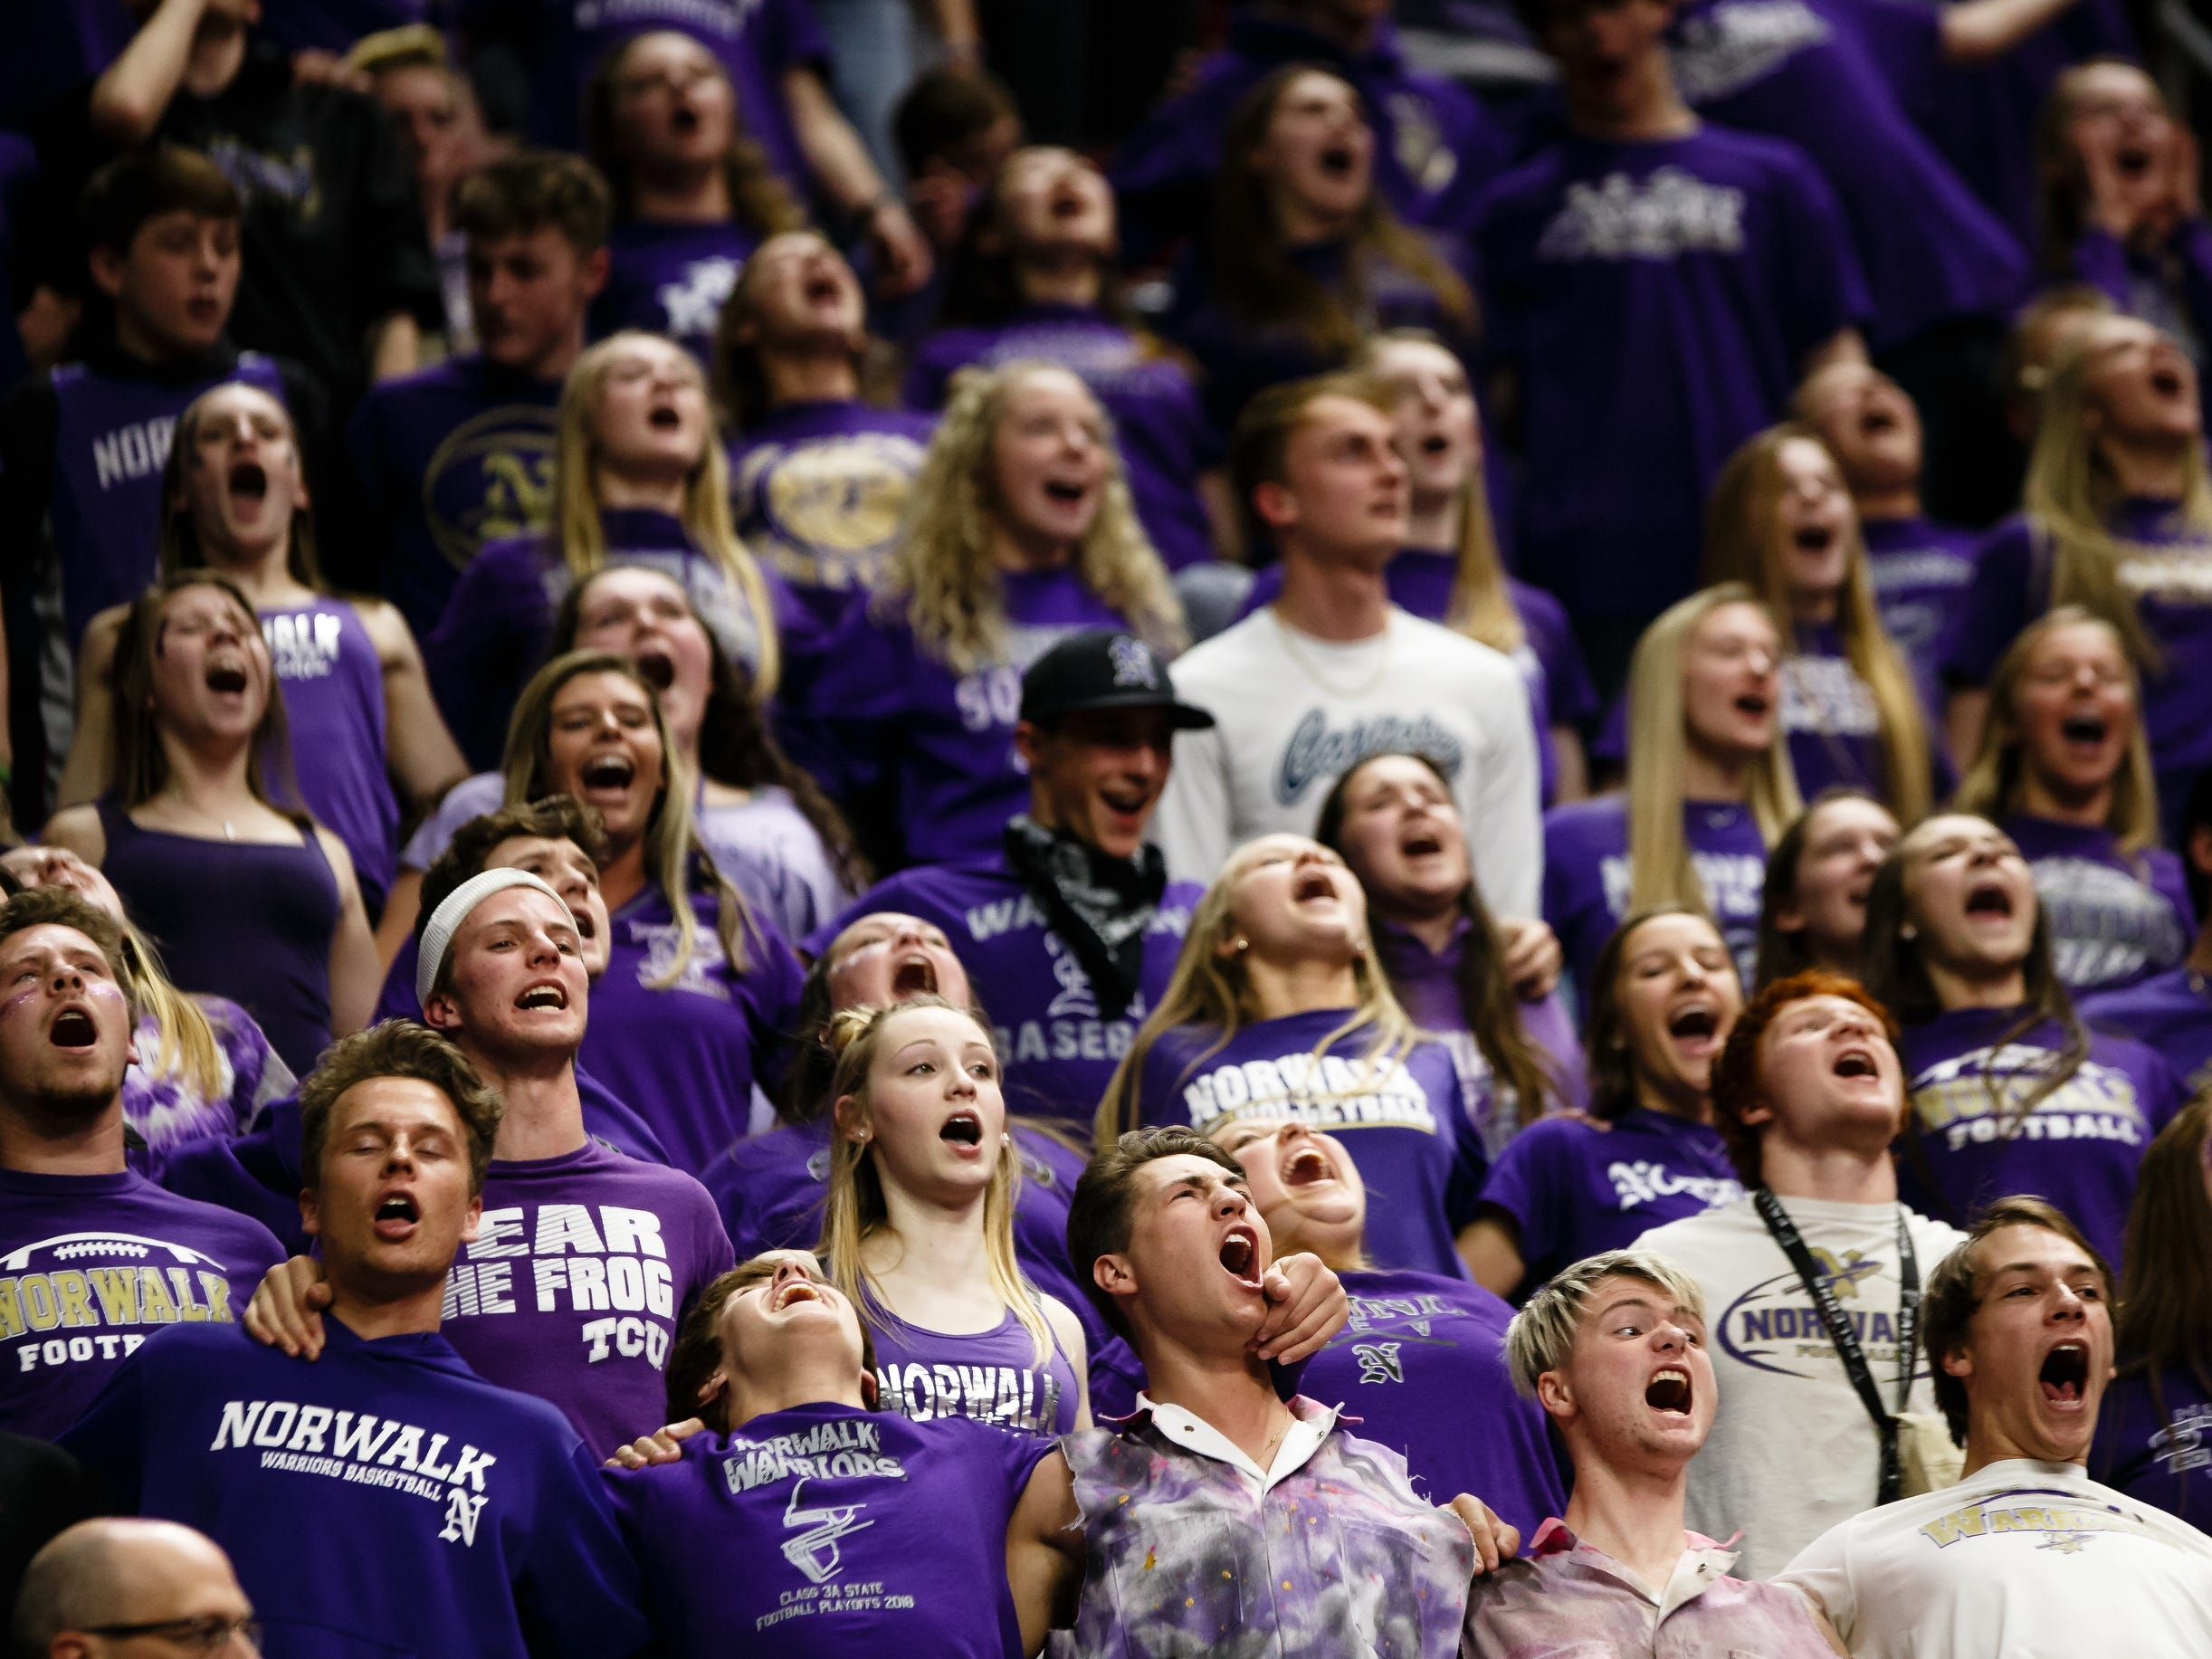 Norwalk's cheering sectino cheers during their boys 3A state basketball championship game on Friday, March 8, 2019 in Des Moines. Norwalk leads Oskaloosa at halftime 31-30.